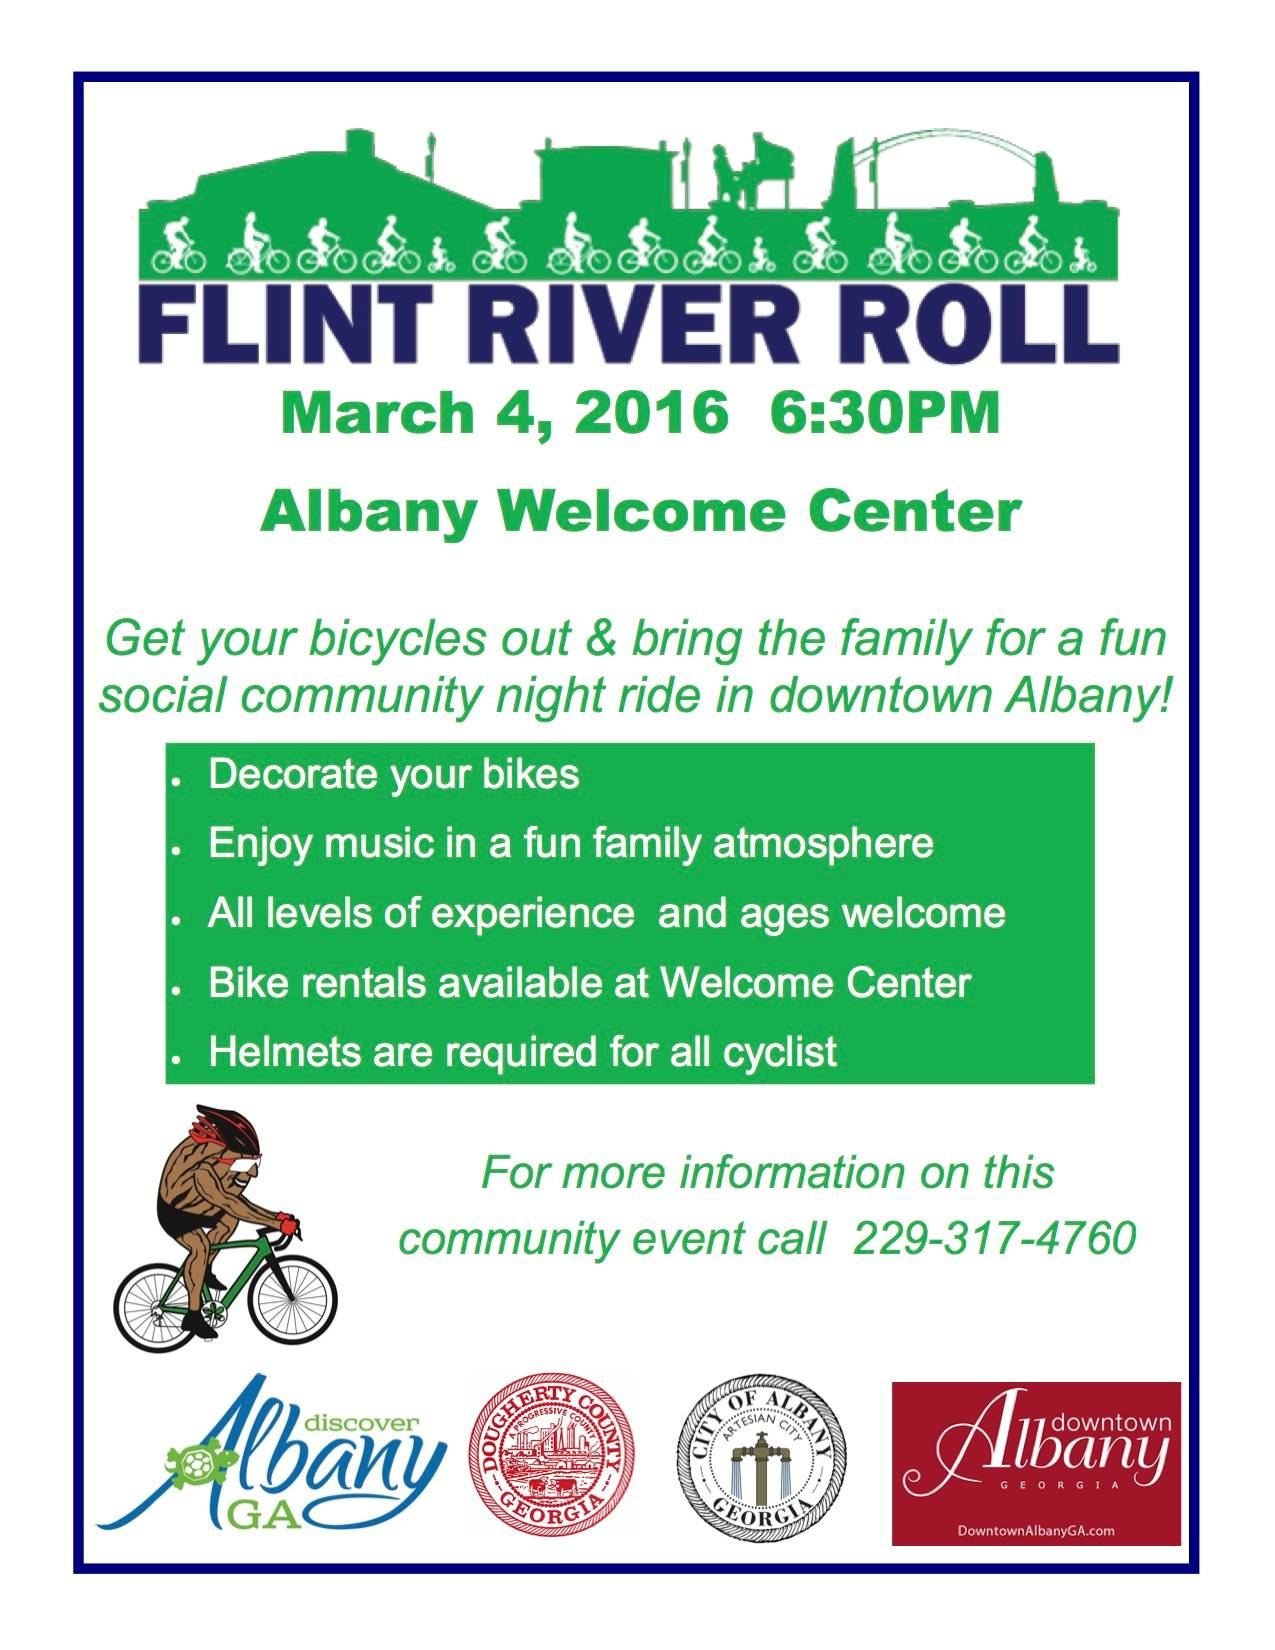 Flint River Roll